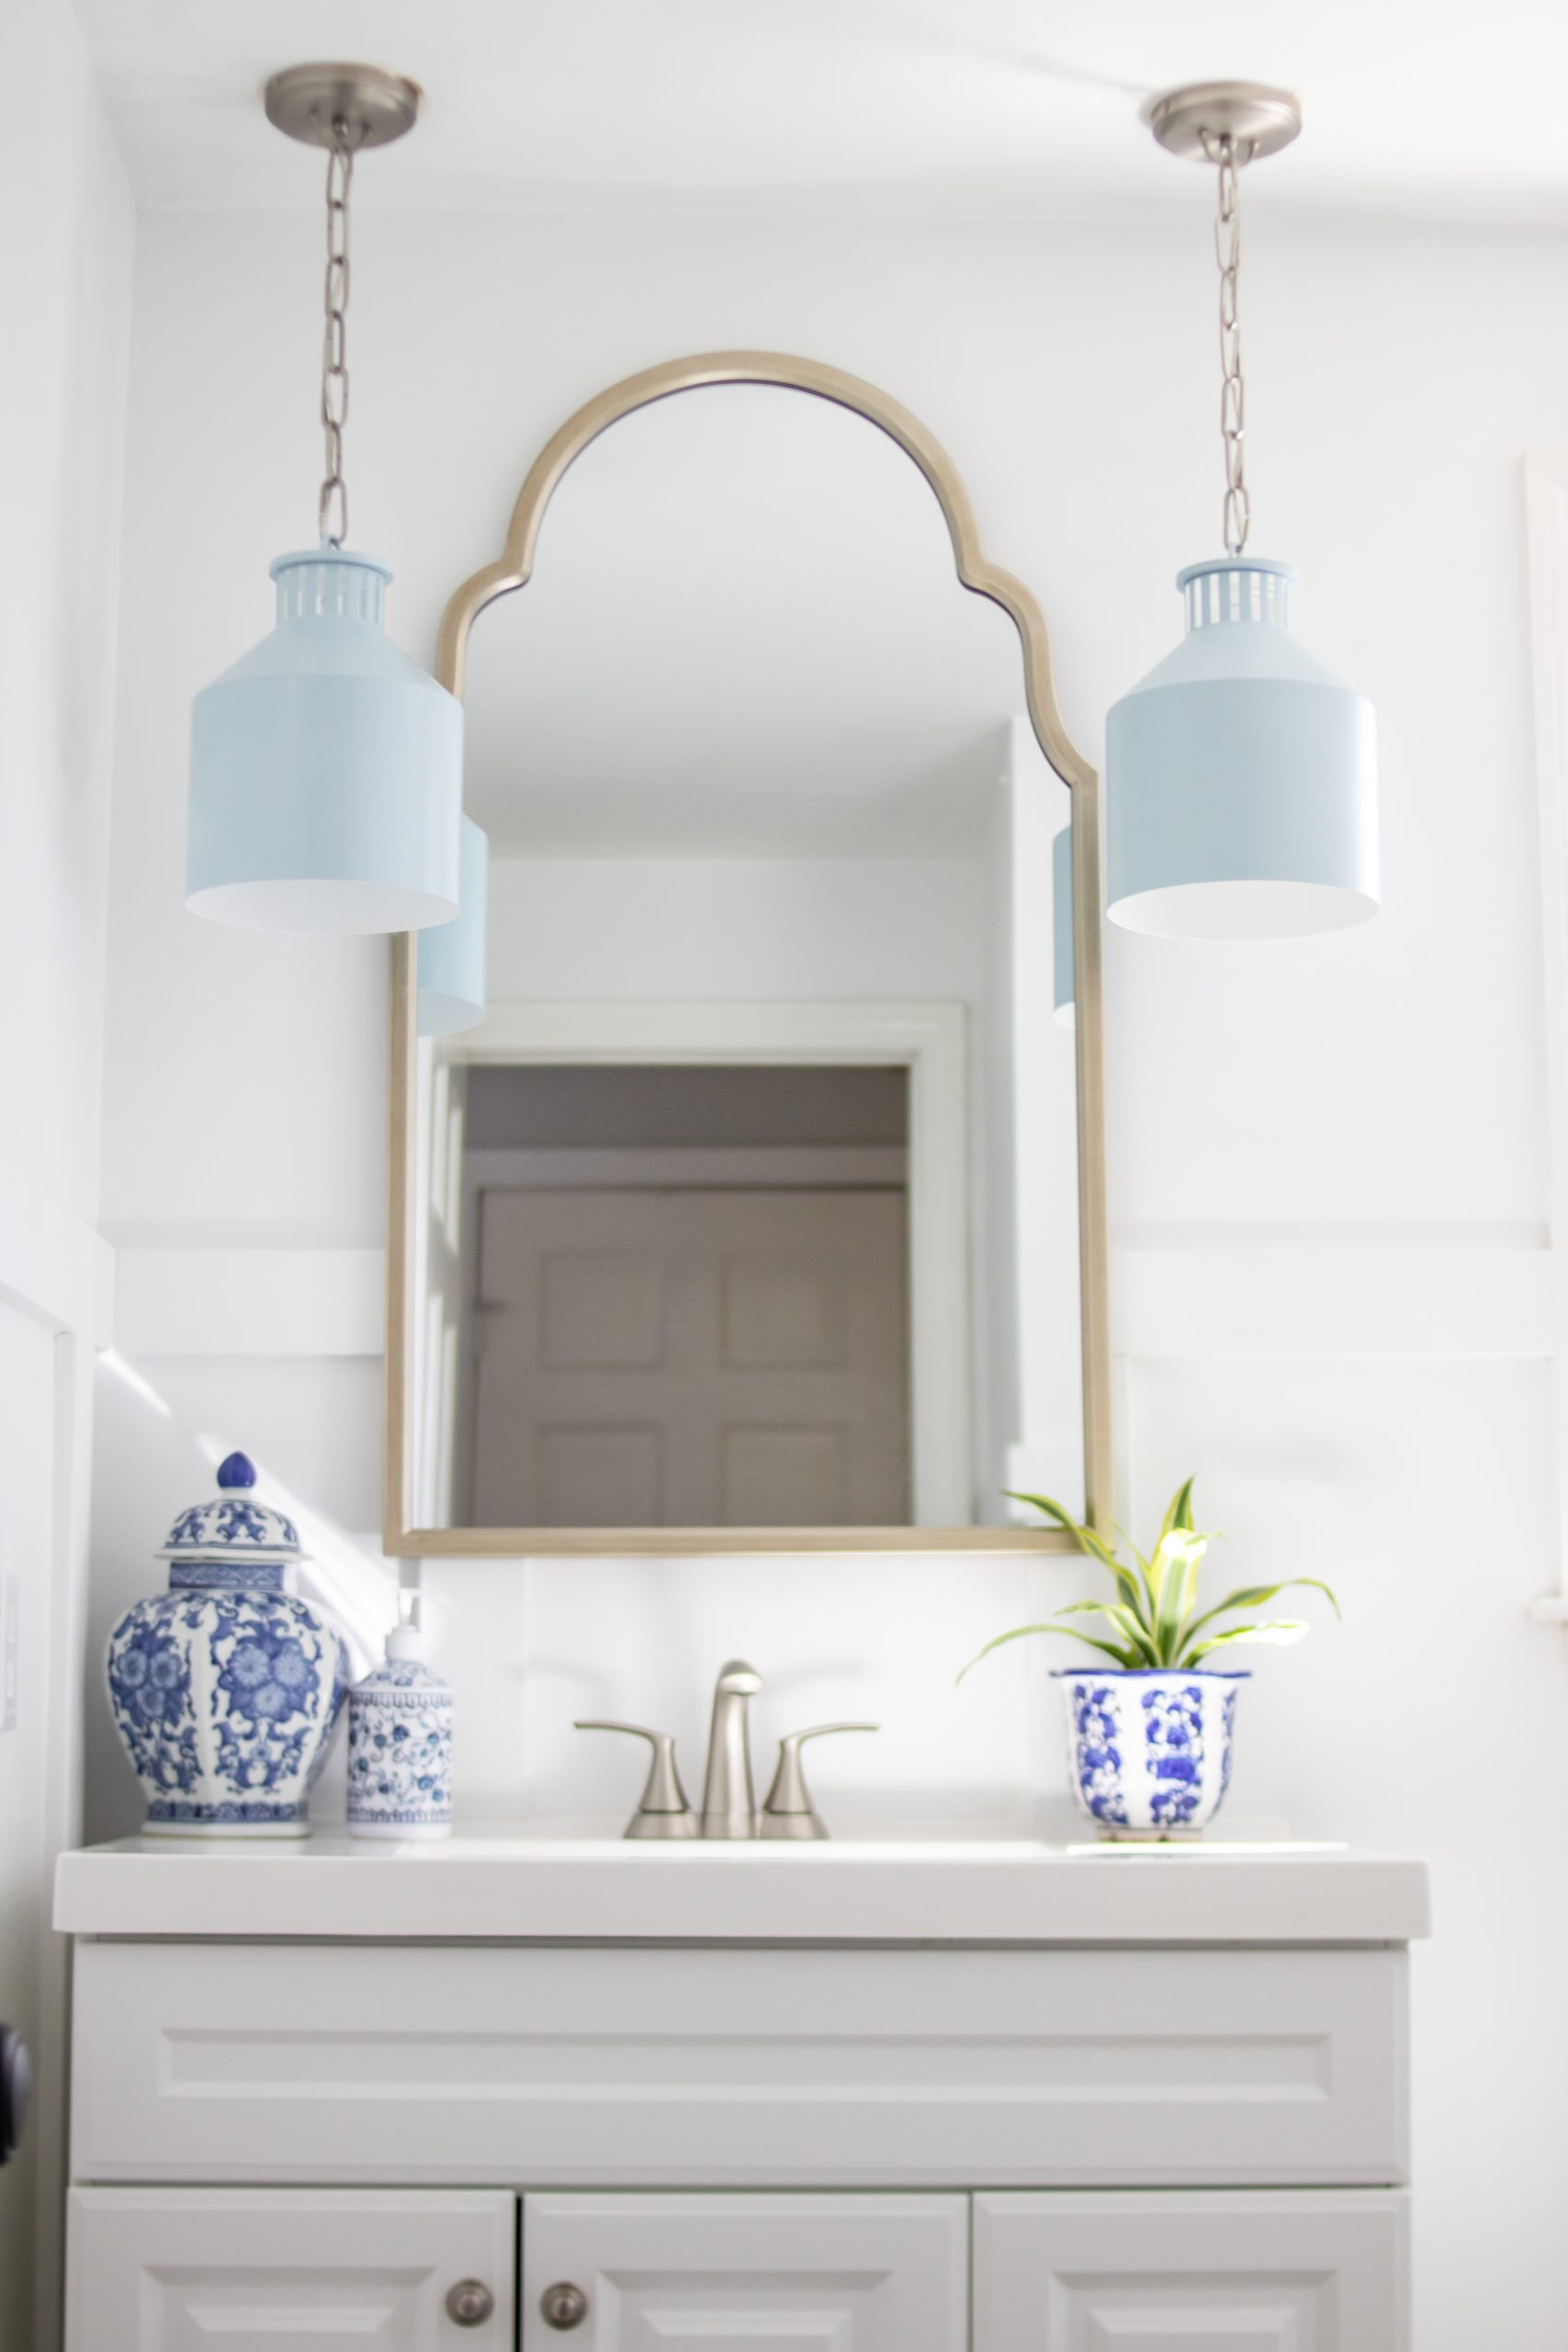 Cape Cod inspired bathroom light blue pendant lights arch mirror white vanity blue ginger jar decor